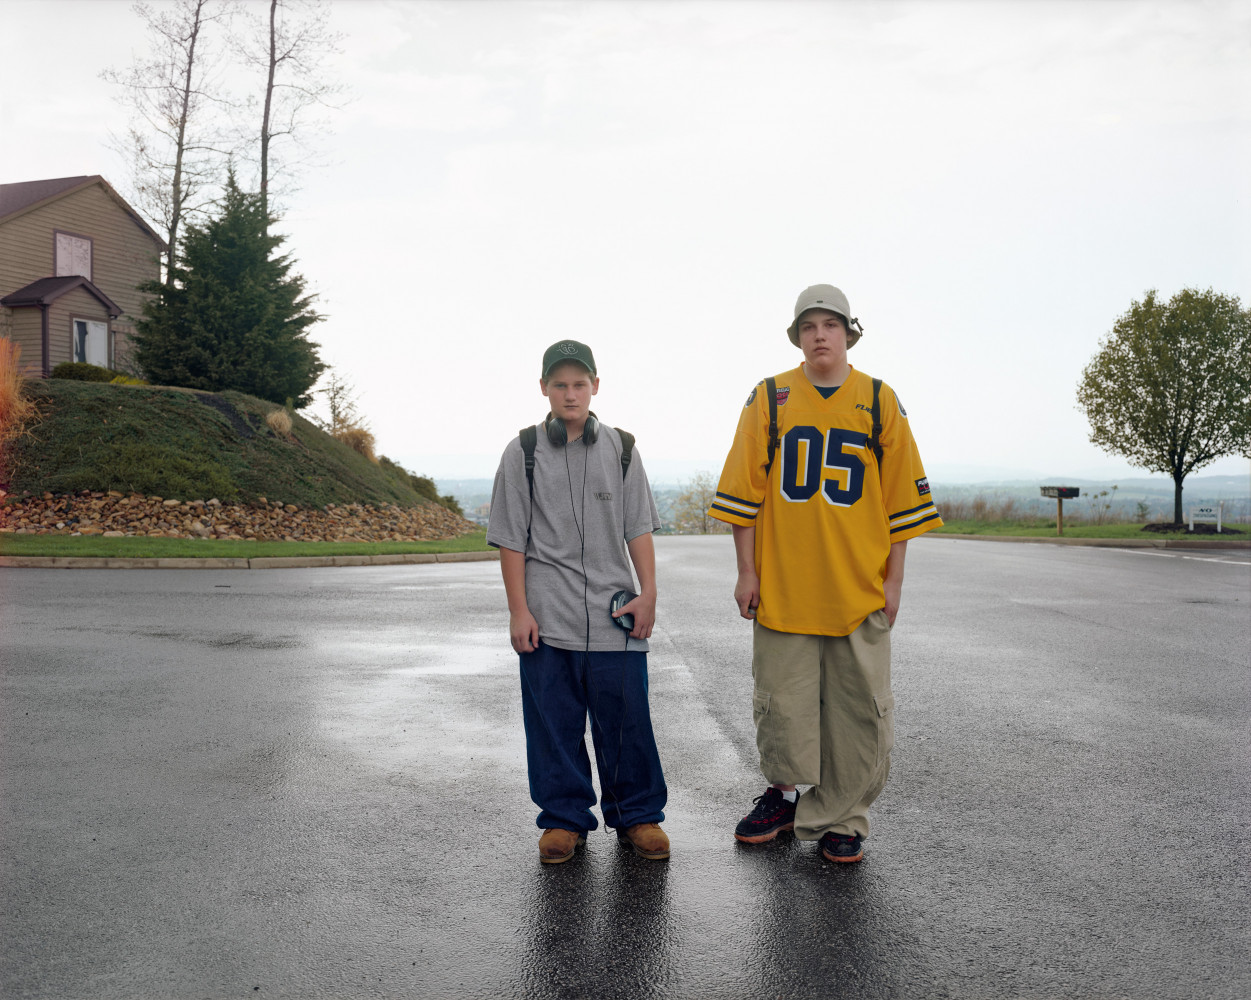 Joel Sternfeld, 'Boys Walking Home after School, Harrisonburg, Virginia, May 1999', 1999